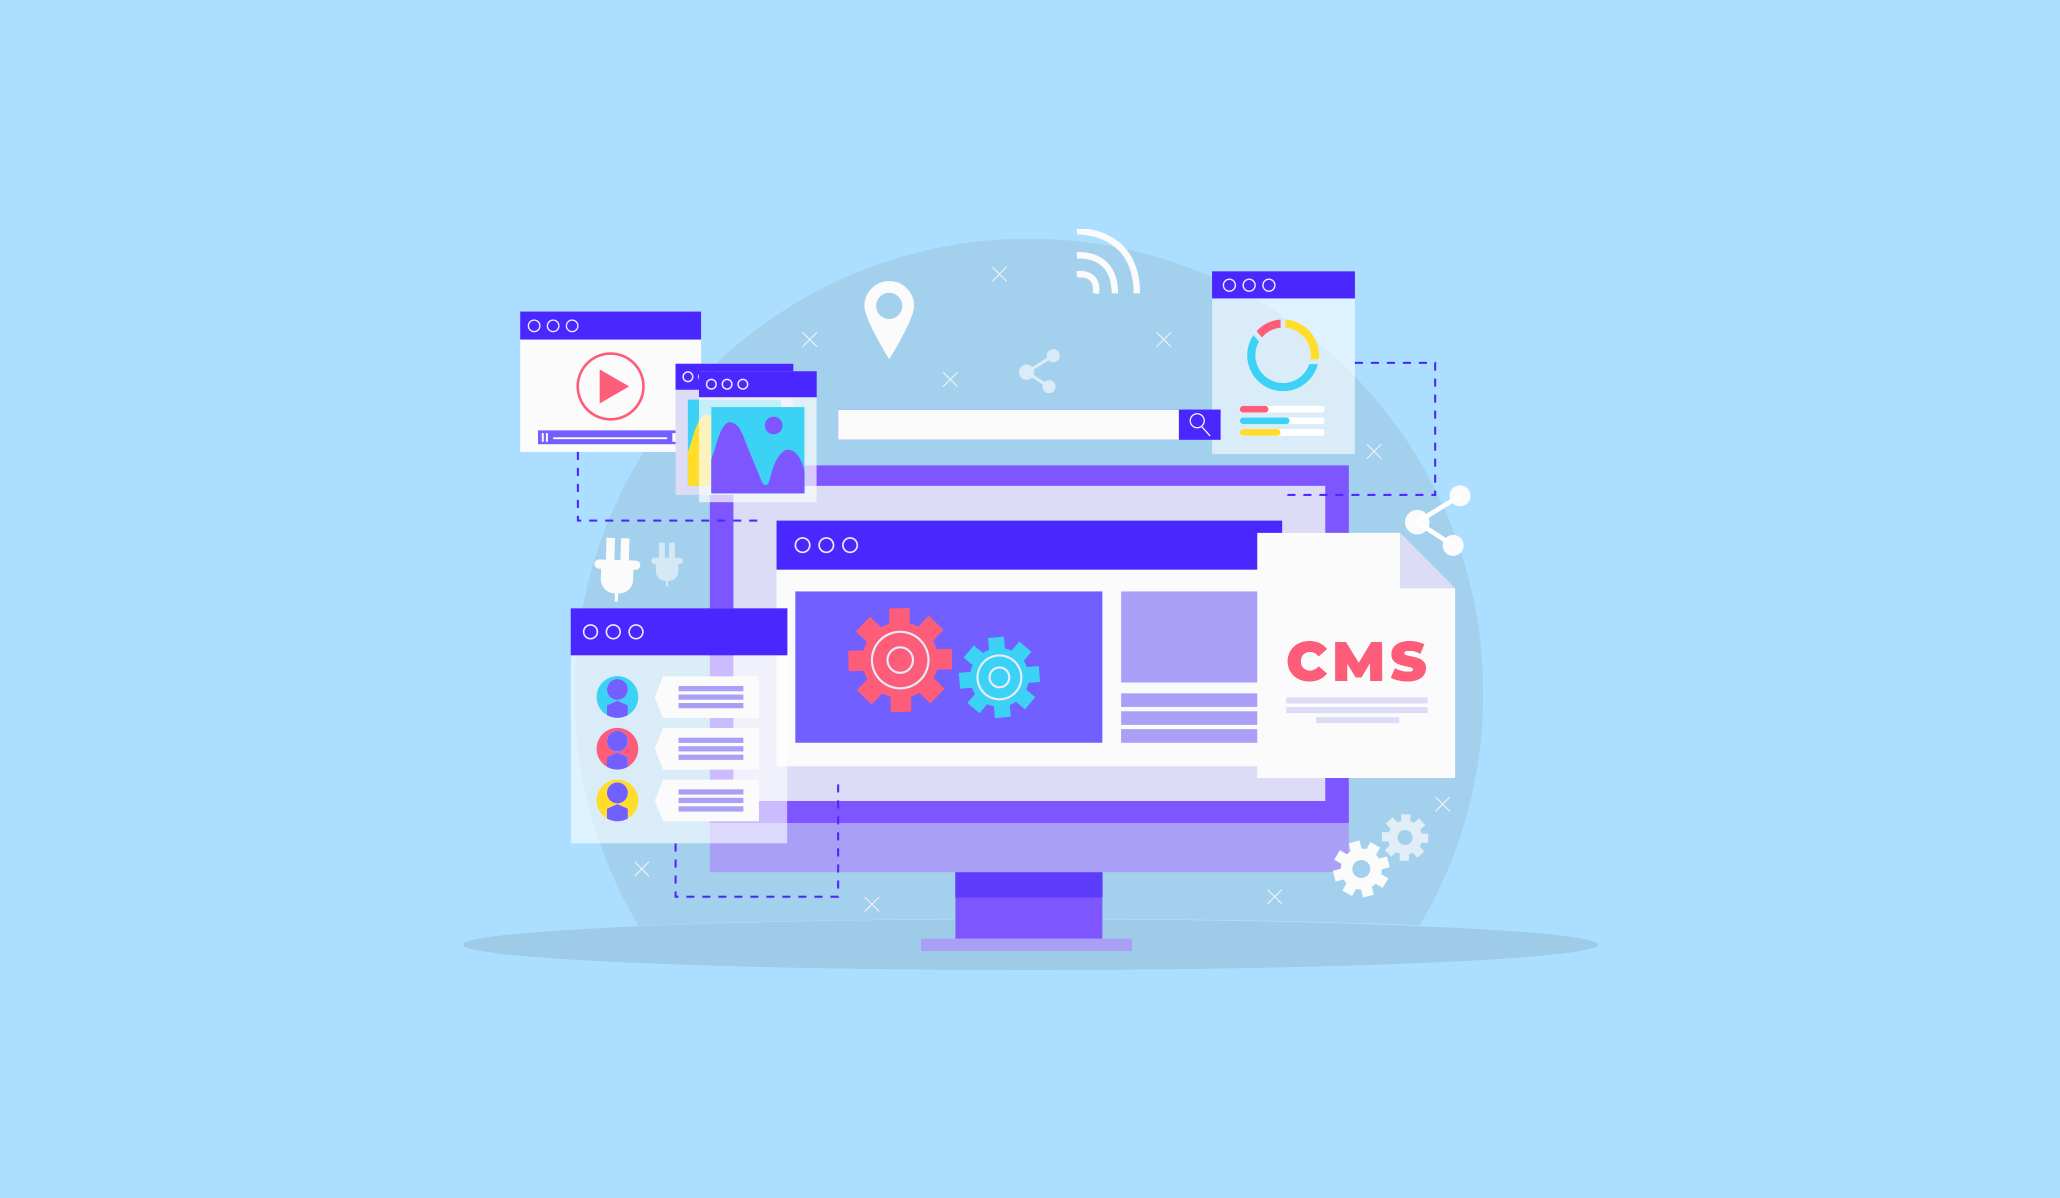 5 Things to Keep in Mind While Choosing the Right CMS for Your Website